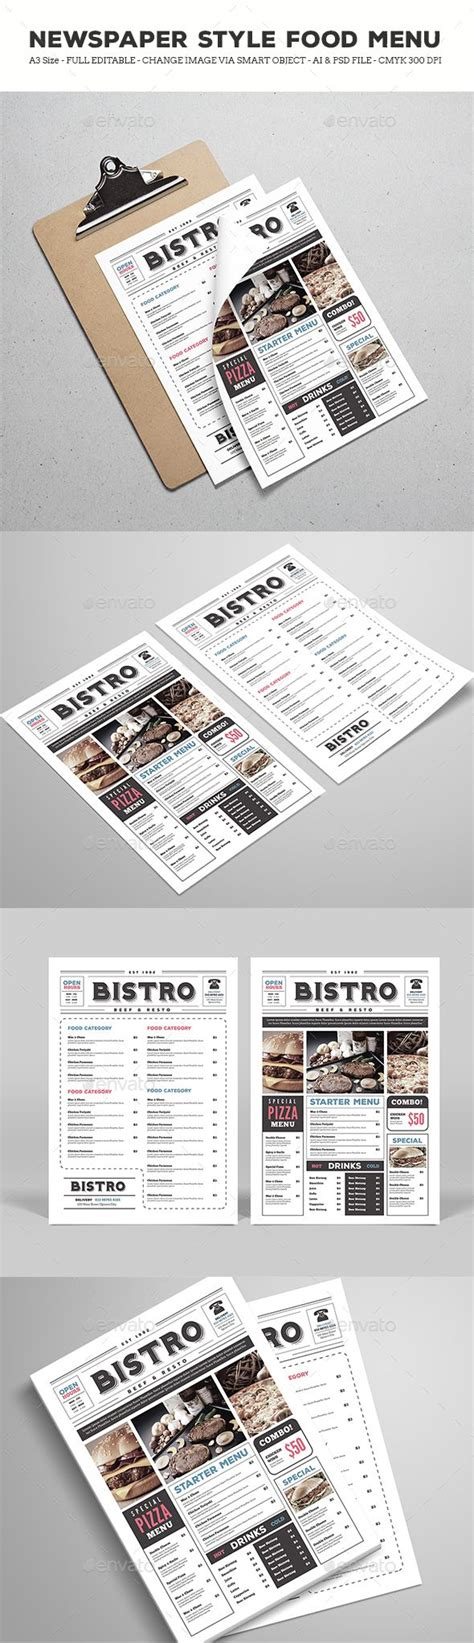 Newspaper Style Food Menu Psd Template Only Available Here Https Graphicriver Net Item Newspaper Style Menu Template